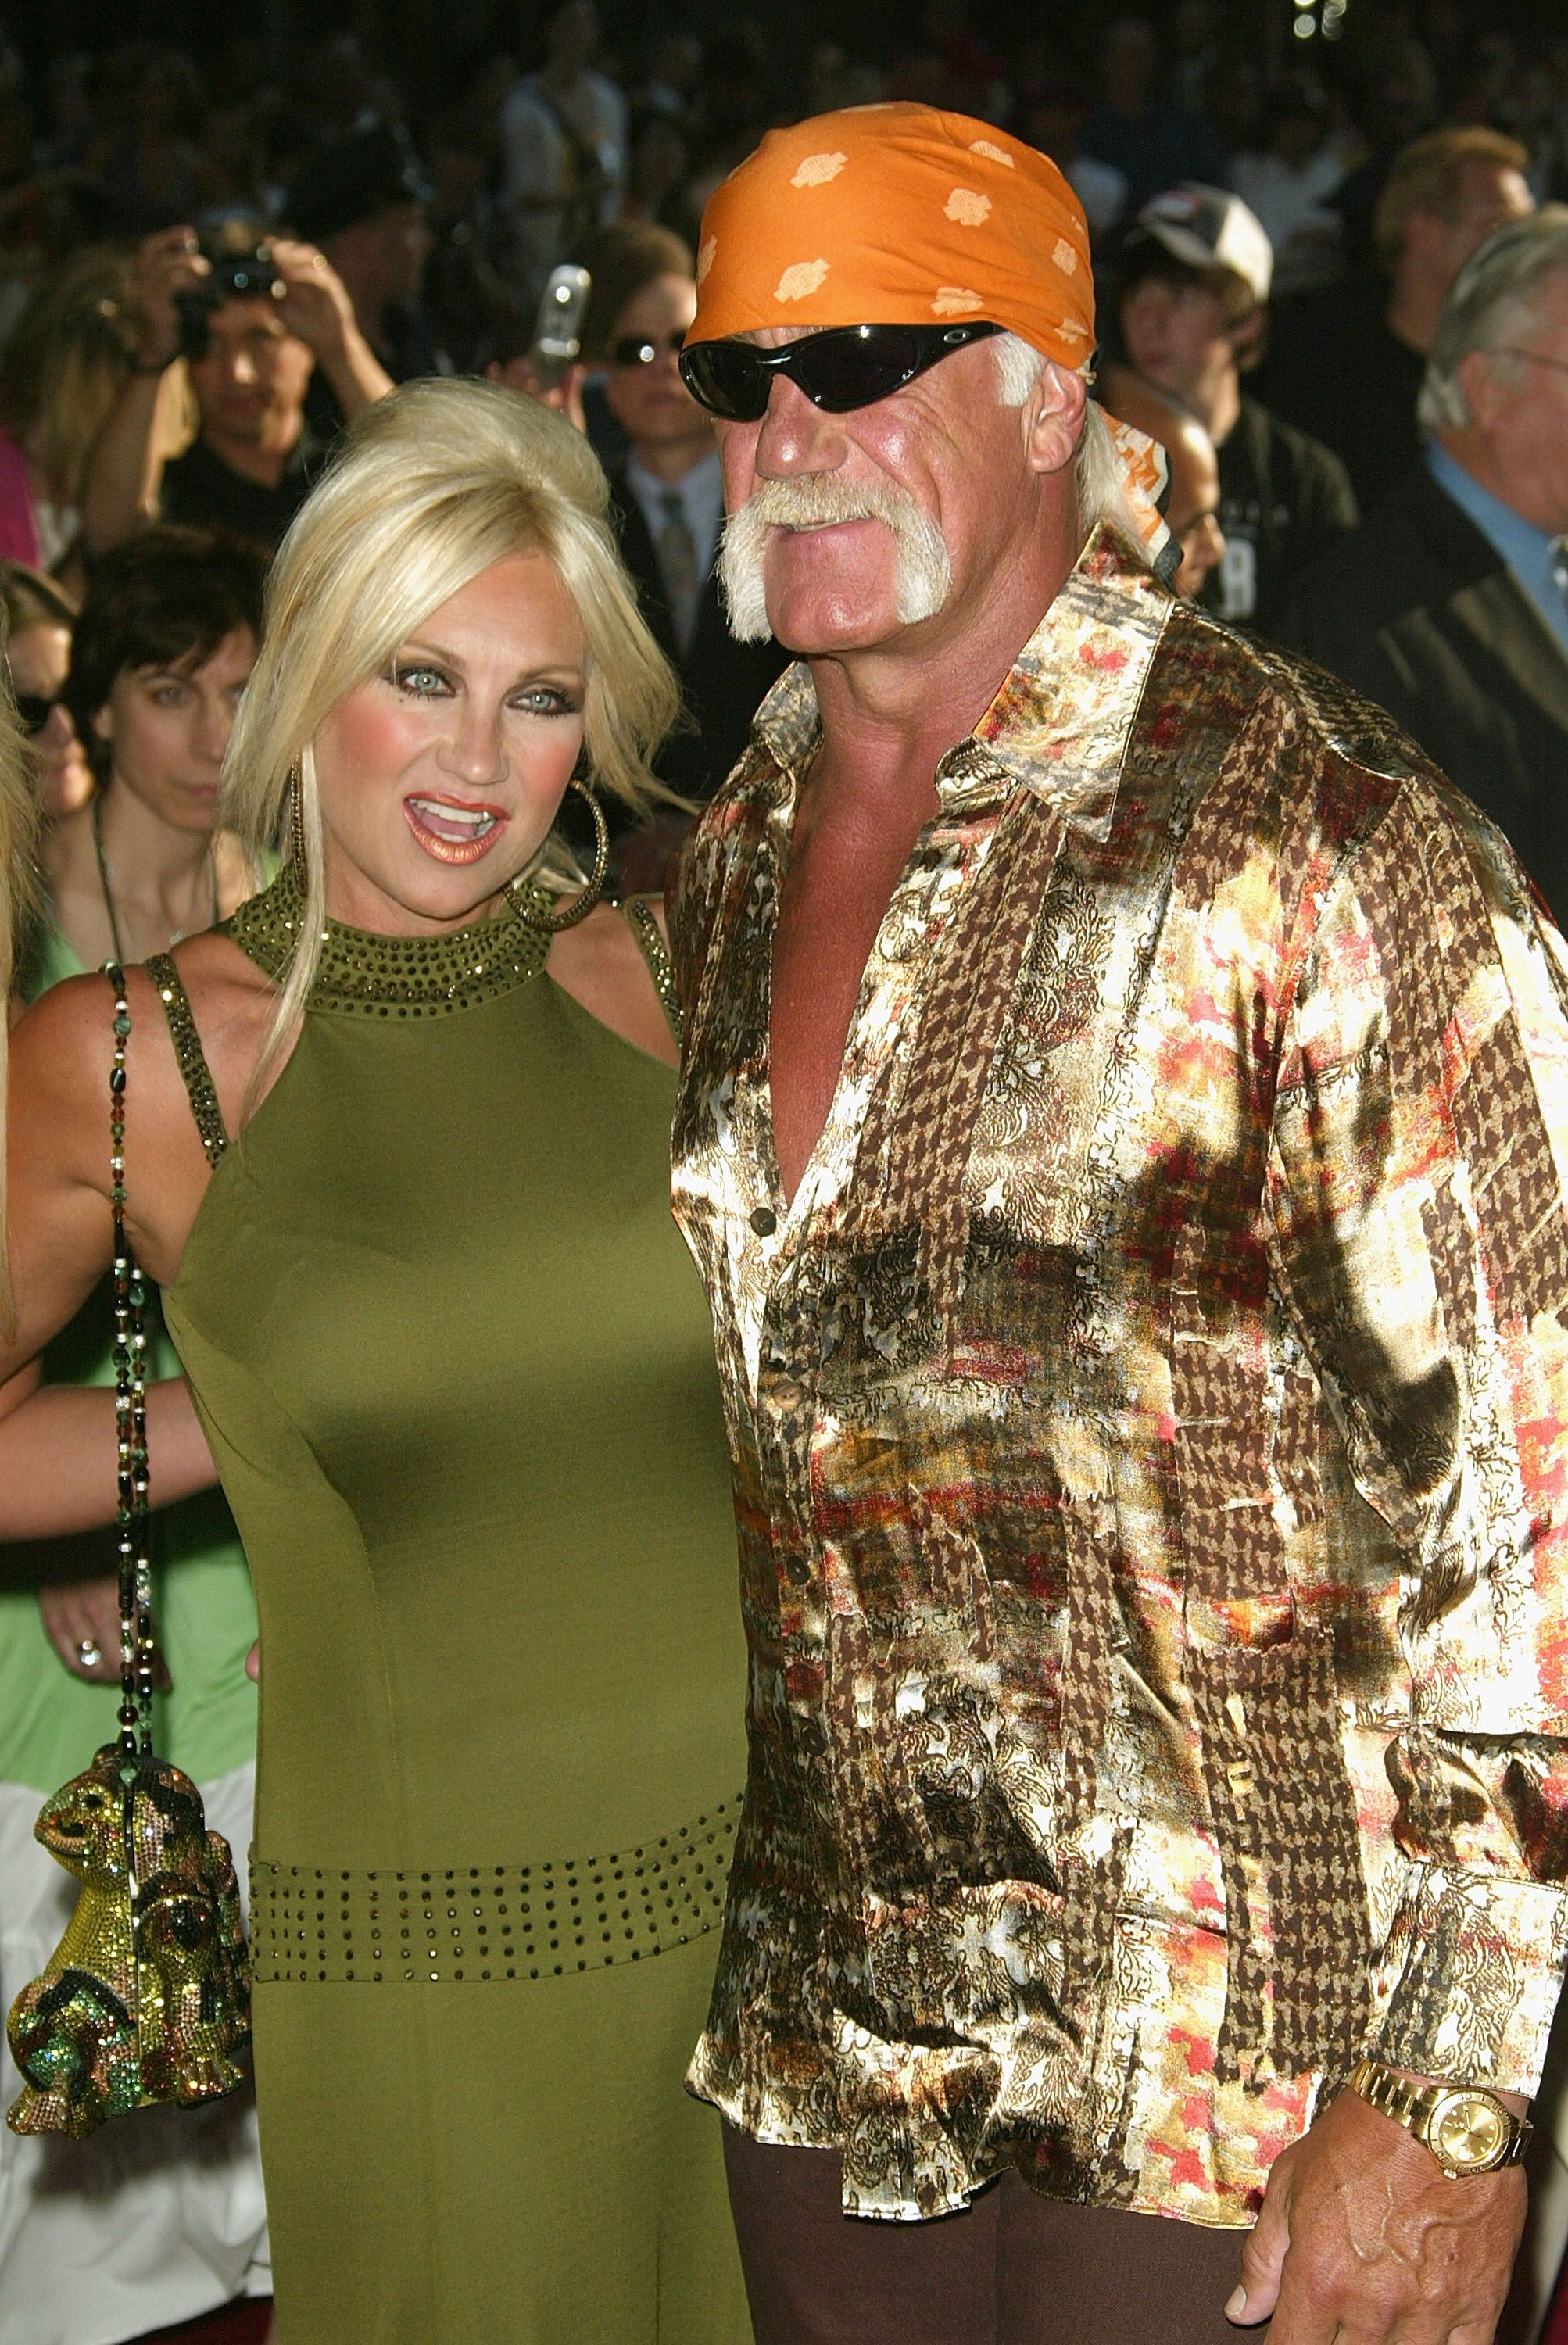 """Hulk Hogan and Linda Hogan at the premiere of """"War Of The Worlds"""" in 2005 in New York City   Source: Getty Images"""